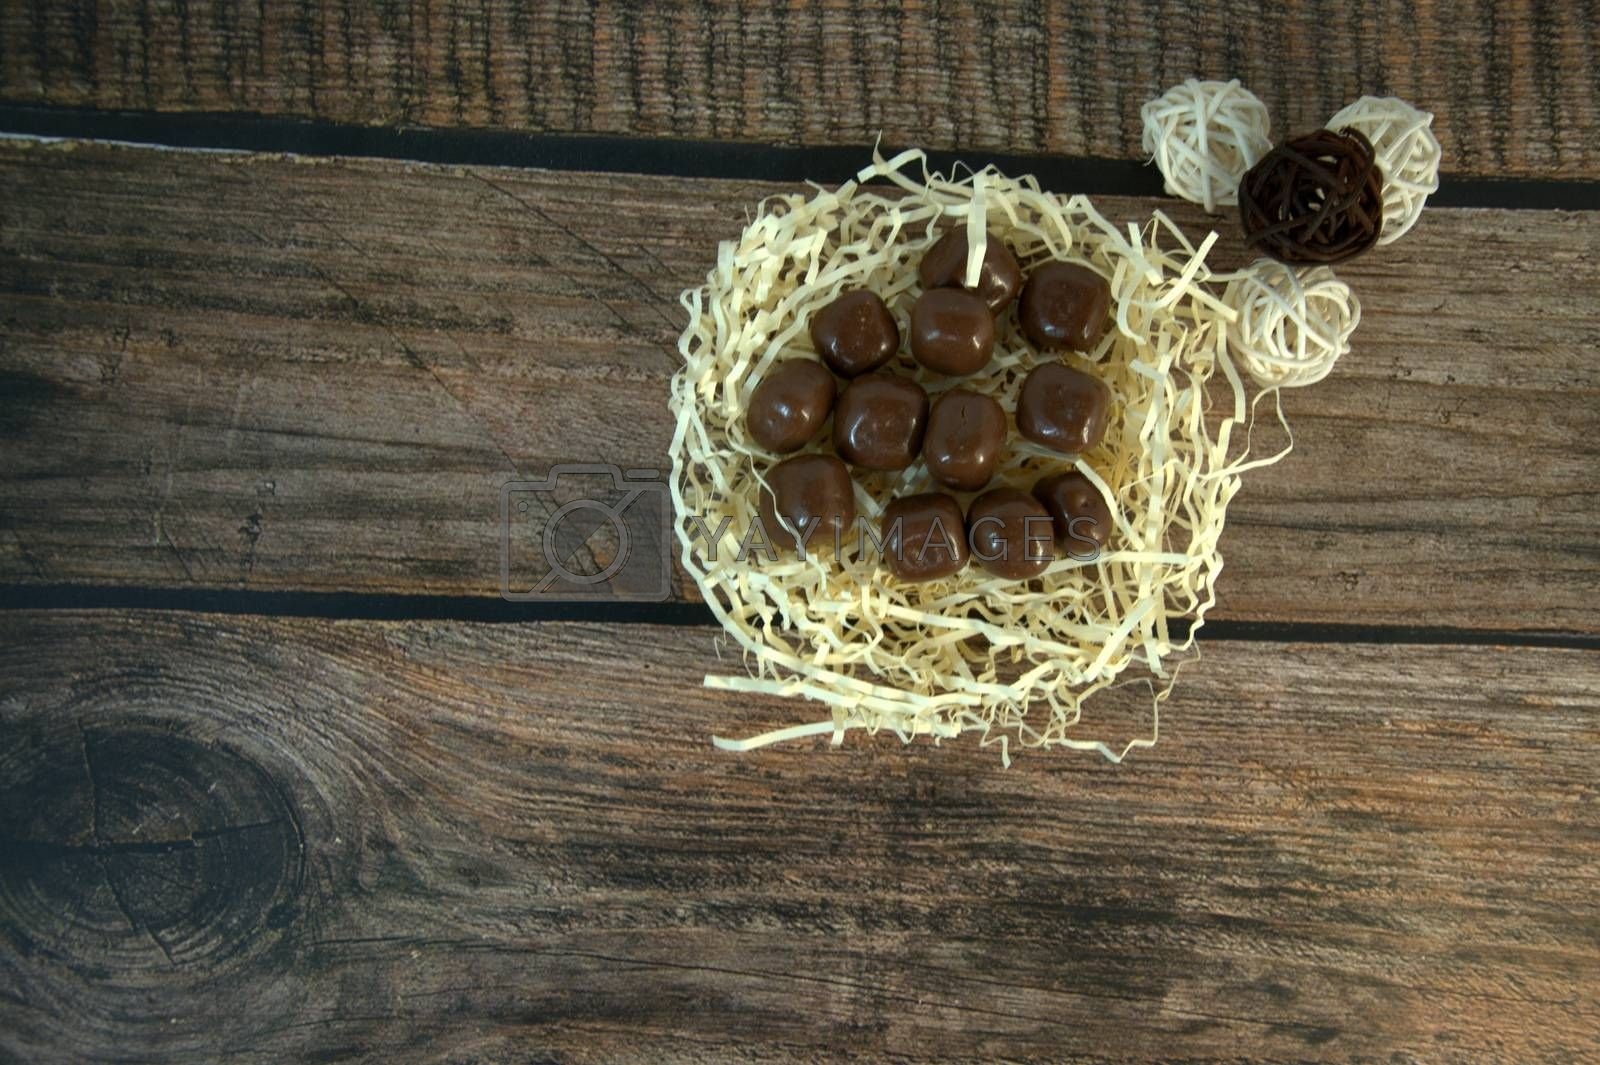 A nest of straw with chocolates and and decorative balls on a wooden table. Close-up.